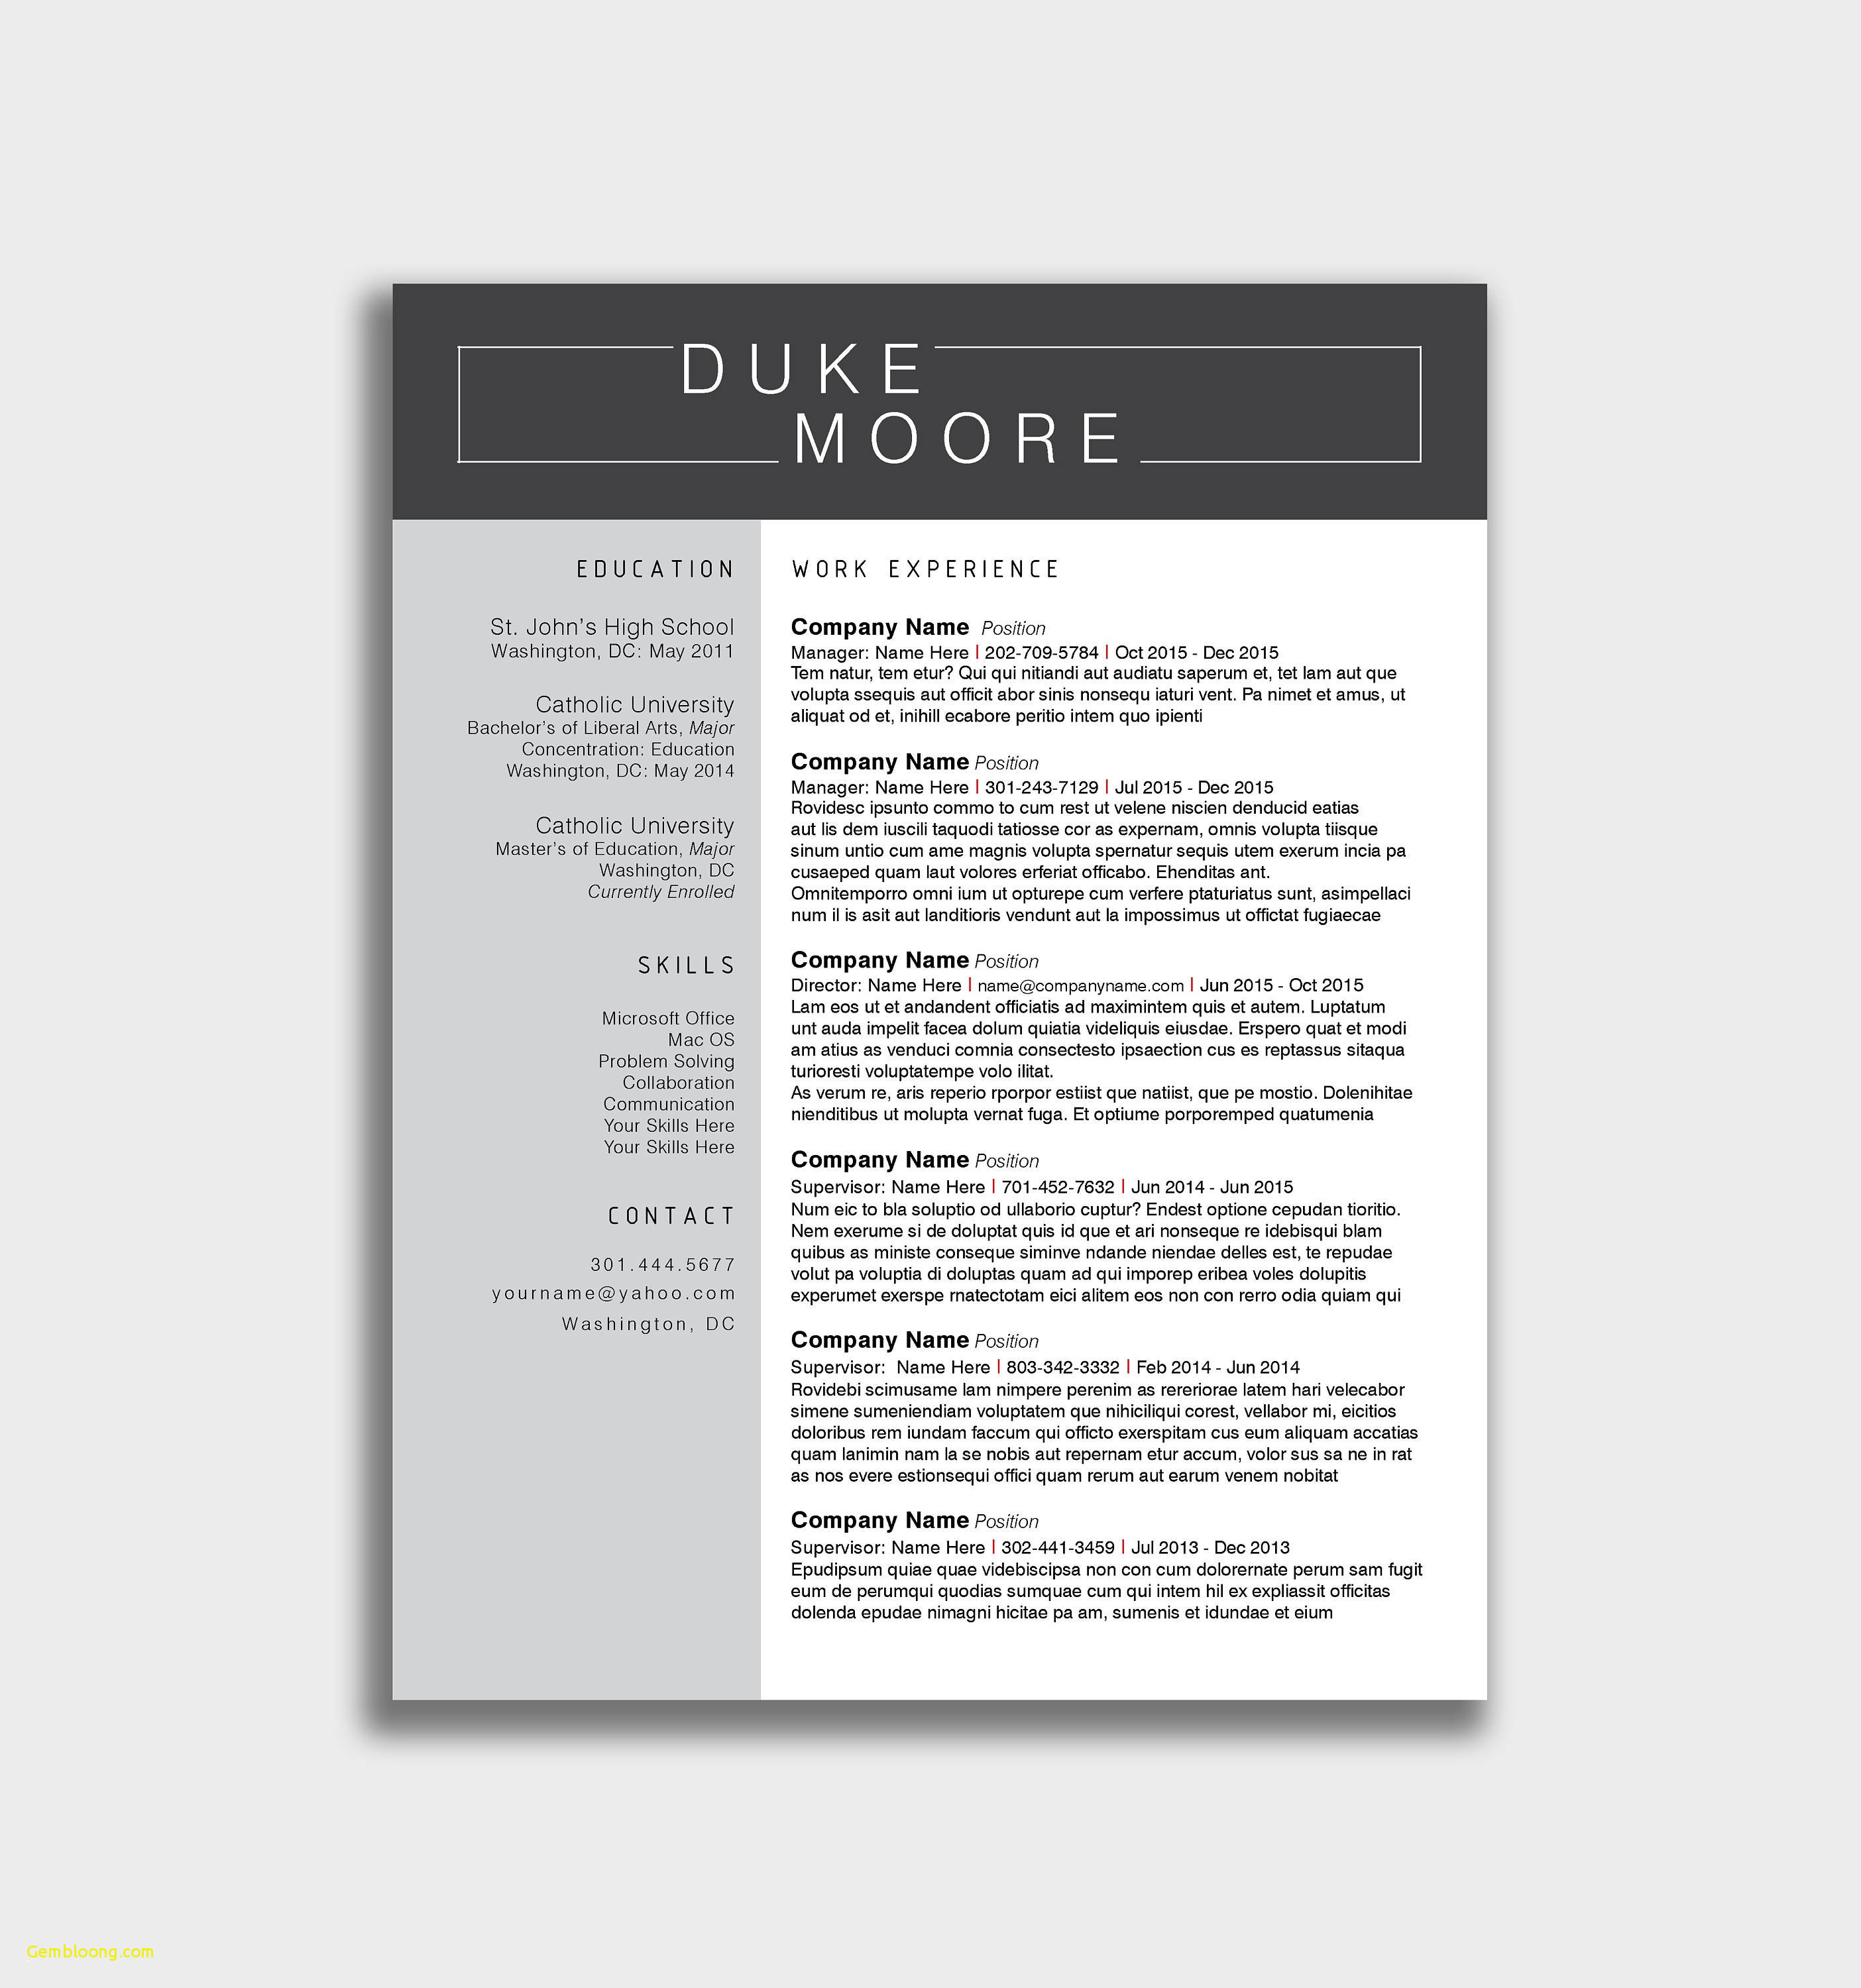 Creative Cover Letter Template Free Download - Creative Resume Template Free Download New Ficial Resume Templates